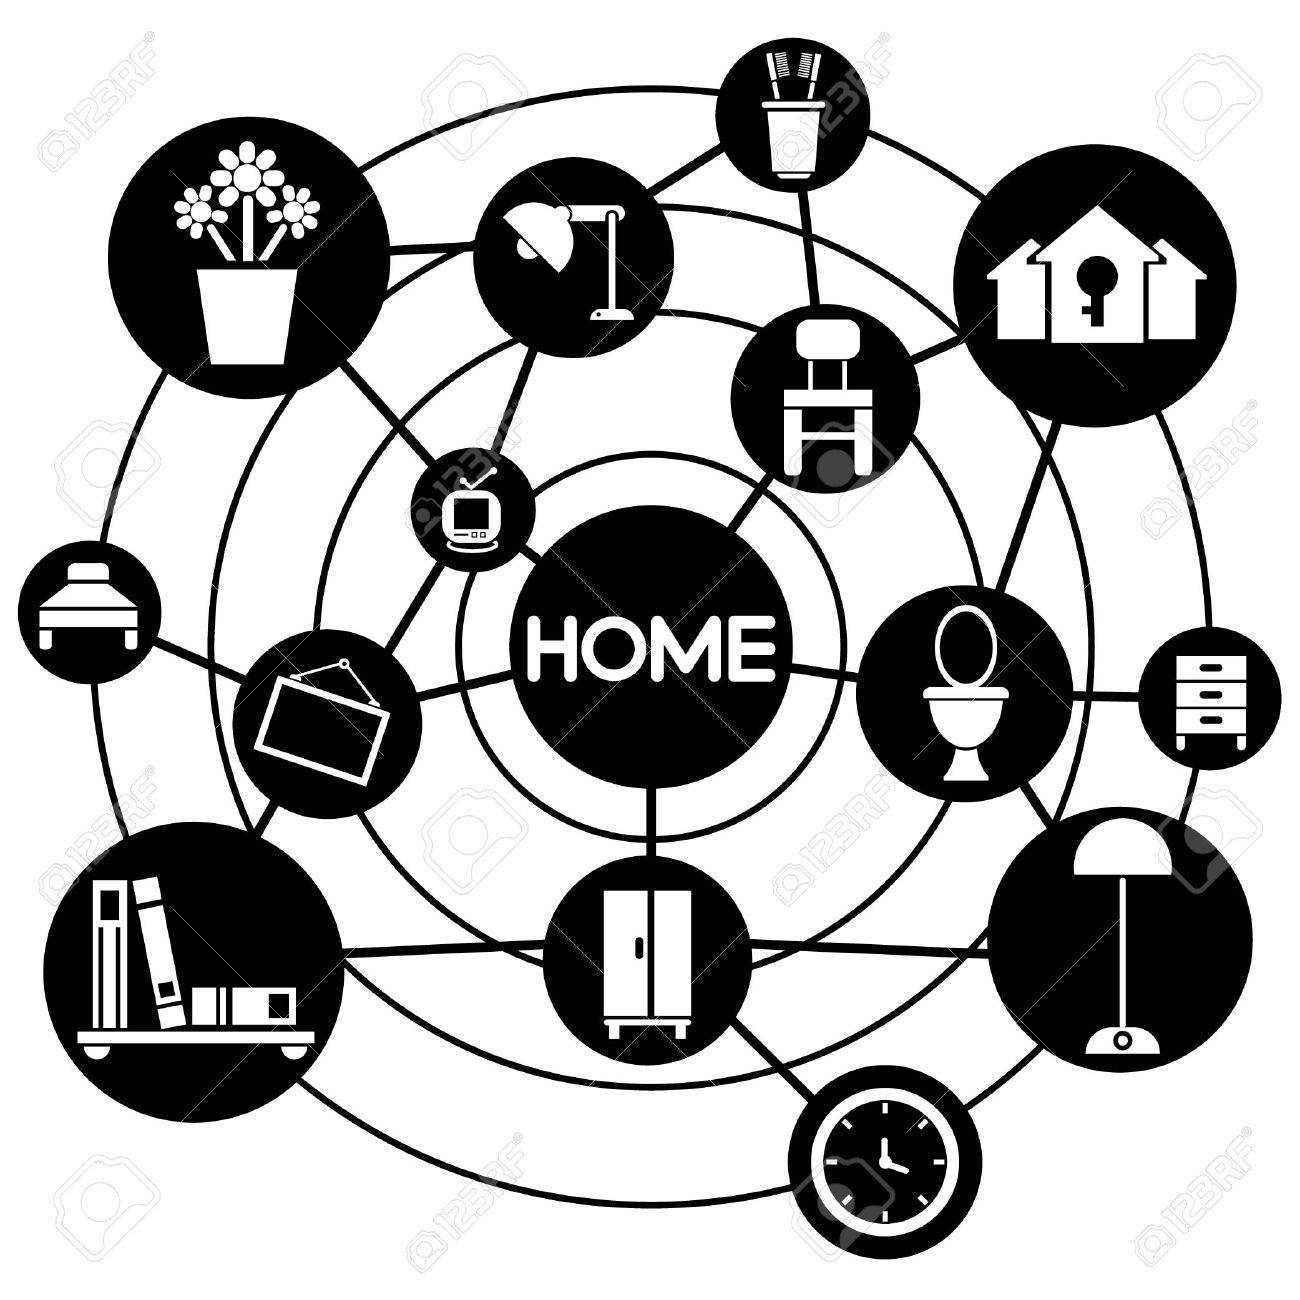 home and interior design connecting network diagram royalty free Network Diagram Examples home and interior design connecting network diagram stock vector 28789362